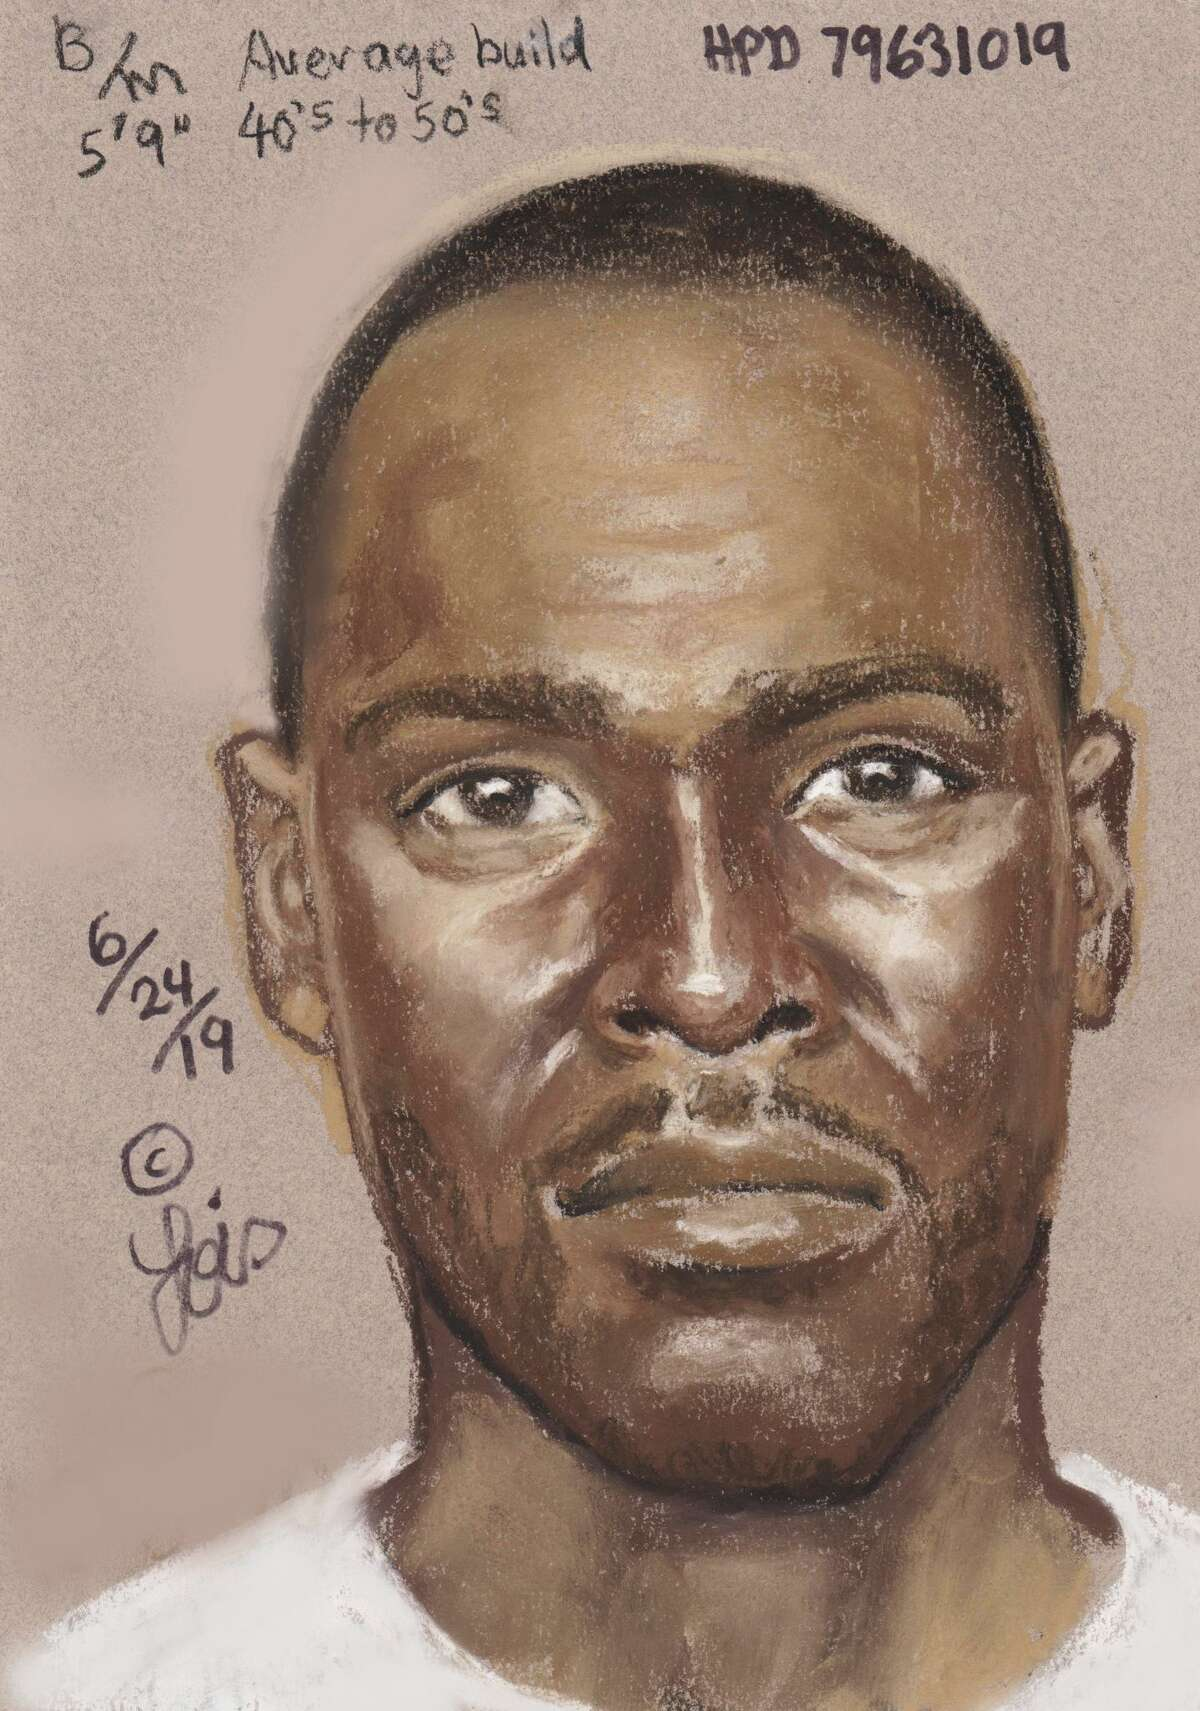 Houston police released this sketch of a man accused of fatally shooting Marlin Jordan, 26, and Maya Brashier, 19, during a robbery around 5:30 a.m. at their apartment in the 7400 block of Hillmont Street.